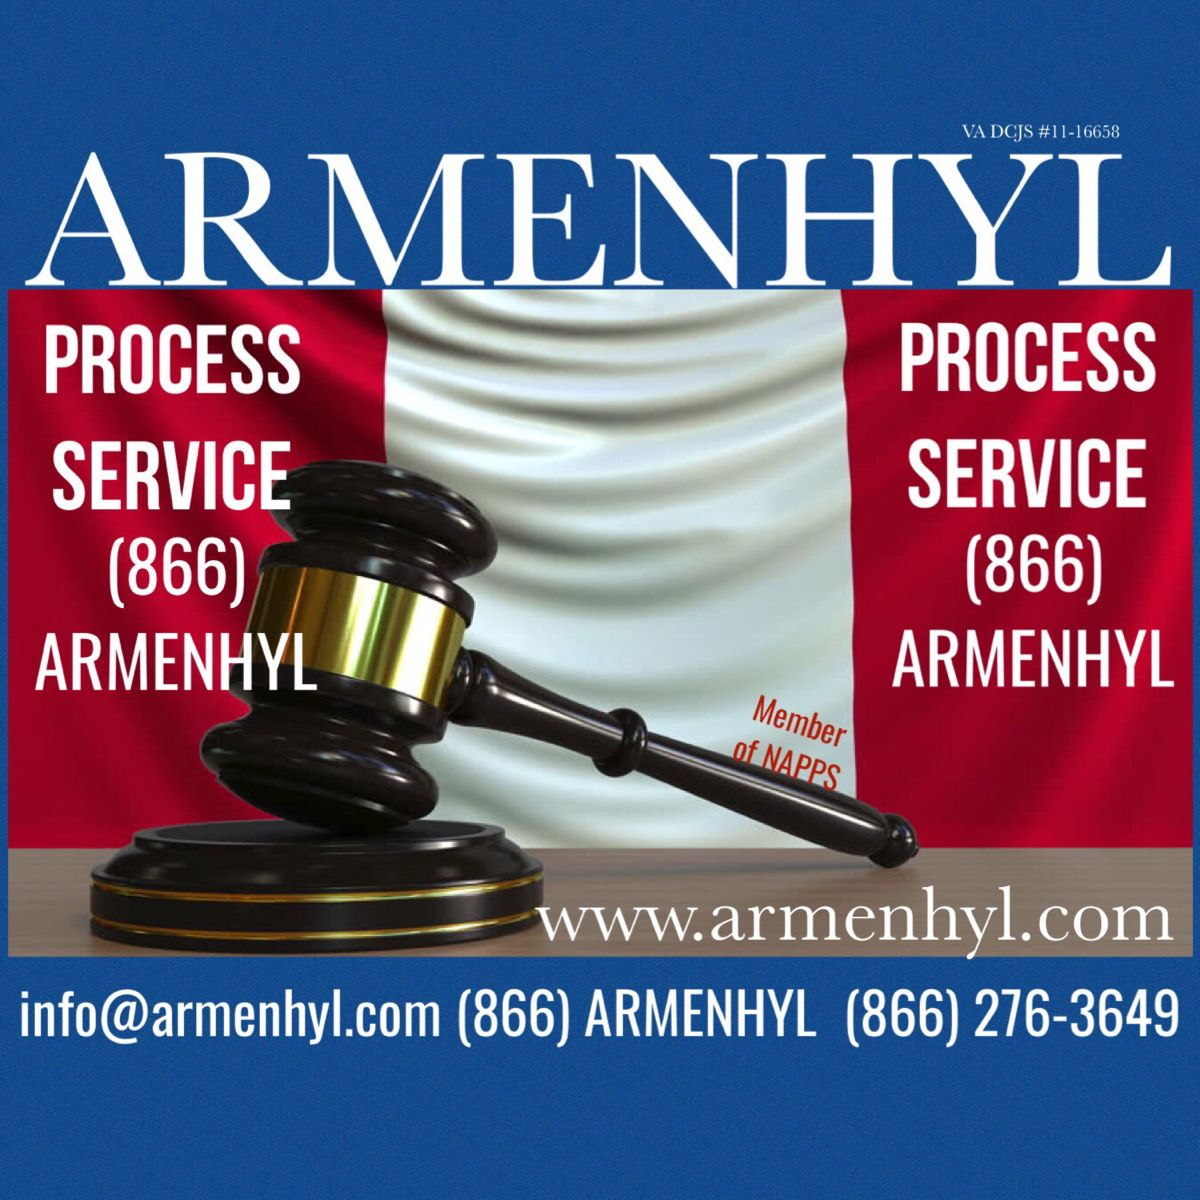 ARMENHYL Nationwide Process Service (866) ARMENHYL (866